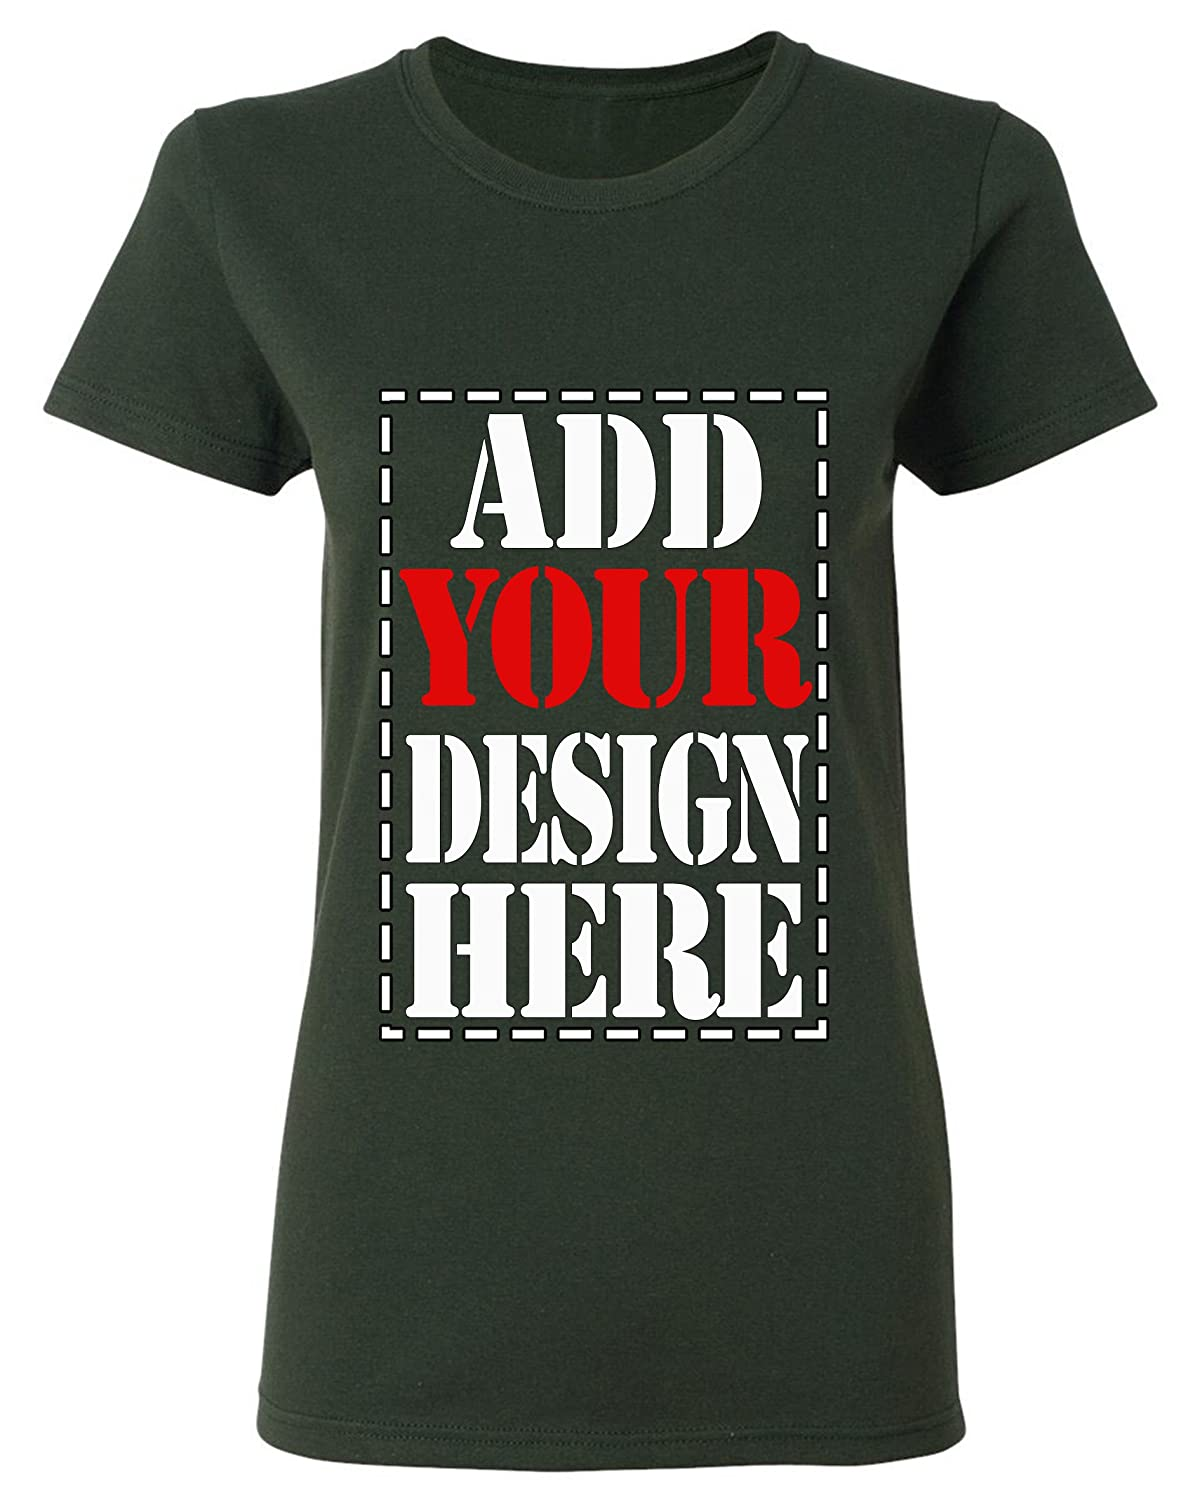 d1a70261f Amazon.com: Design Your OWN Shirt Customized T-Shirt - Add Your Picture  Photo Text Print - Women Tee (Slim Fit): Clothing